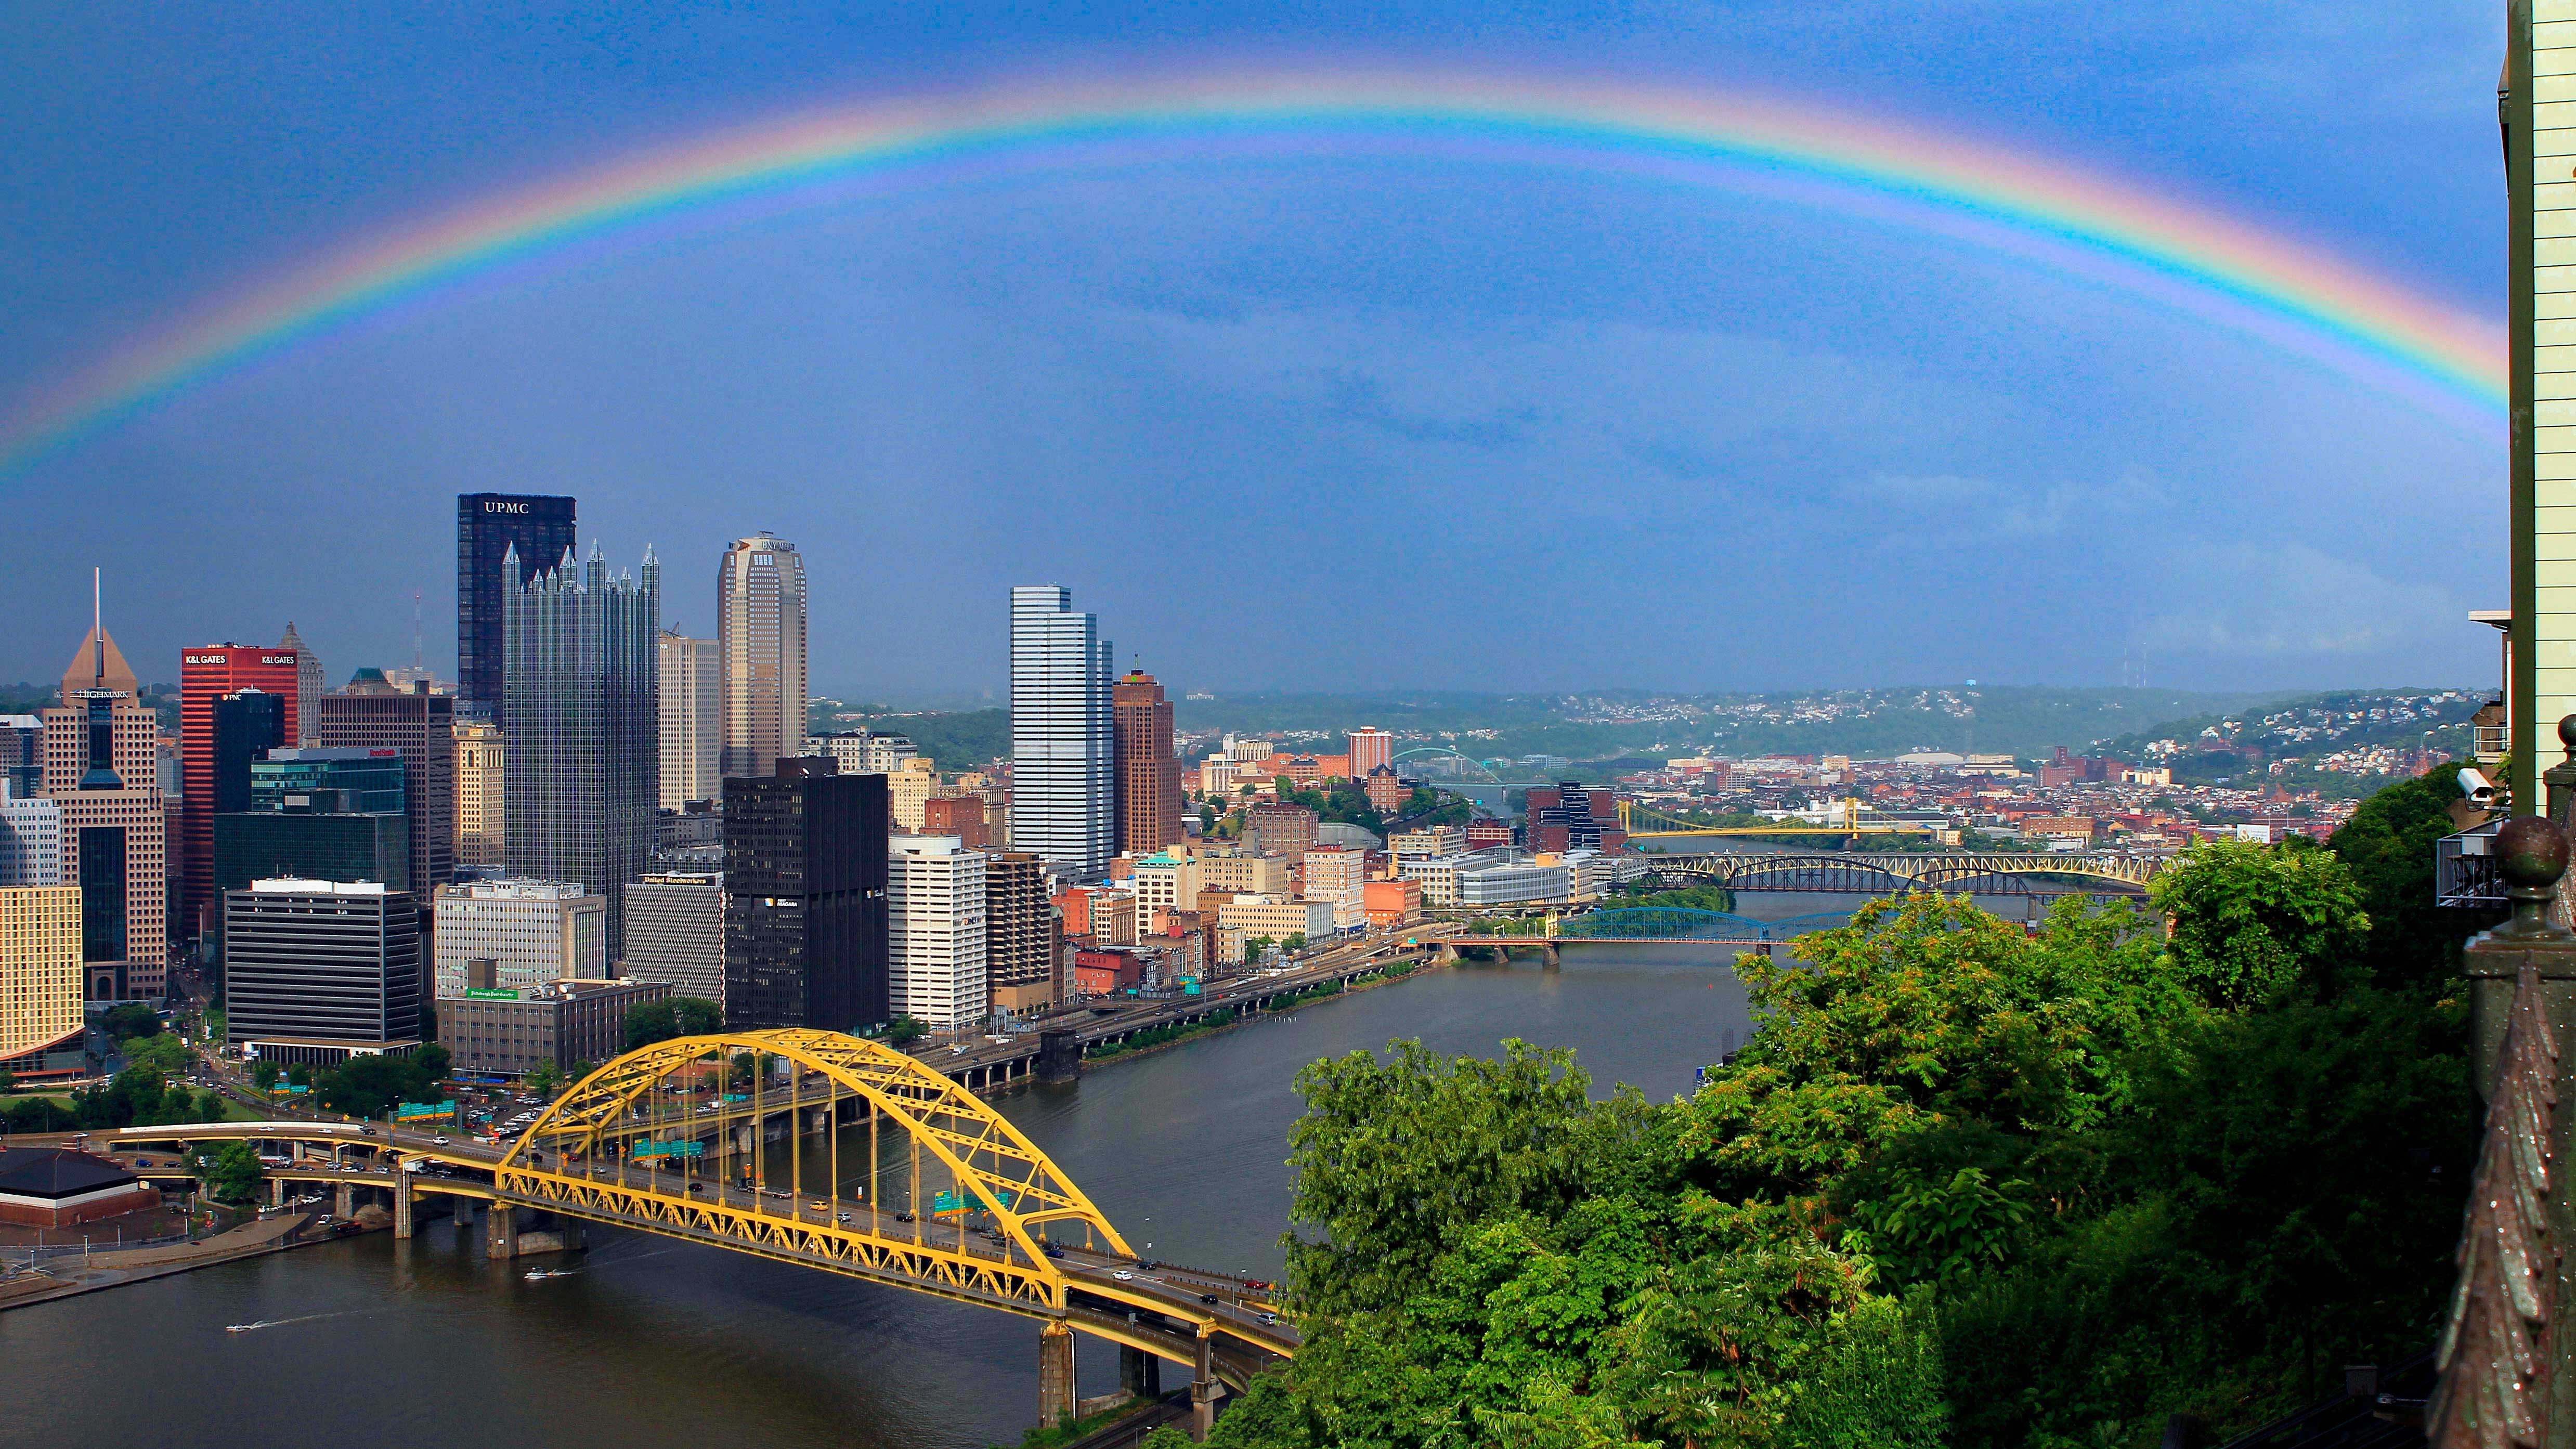 A rainbow over Pittsburgh